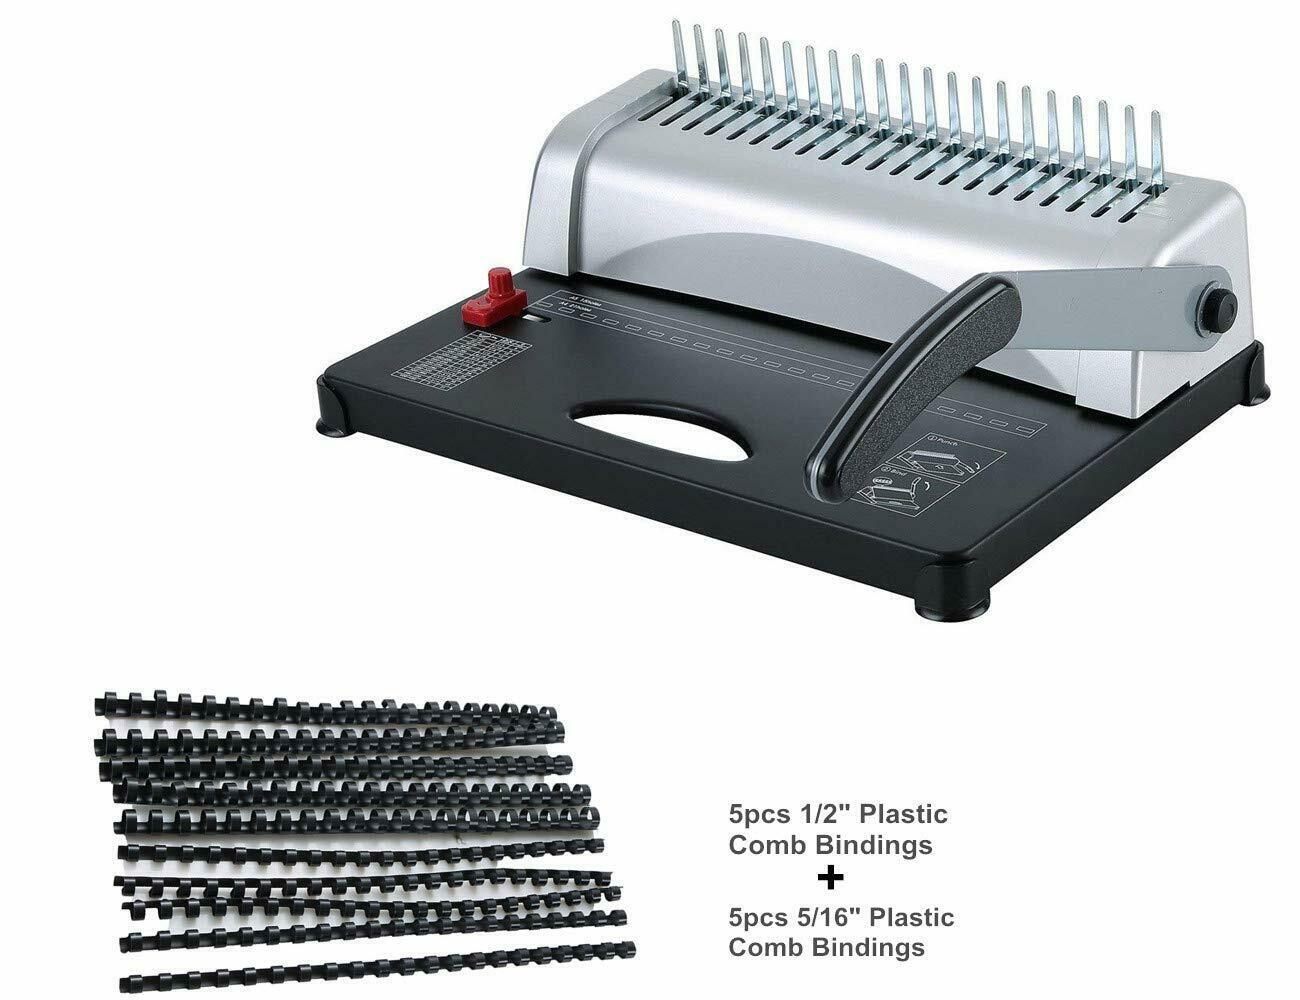 Binding Machine with Starter Combs Set - 21 Hole / 450 Sheet